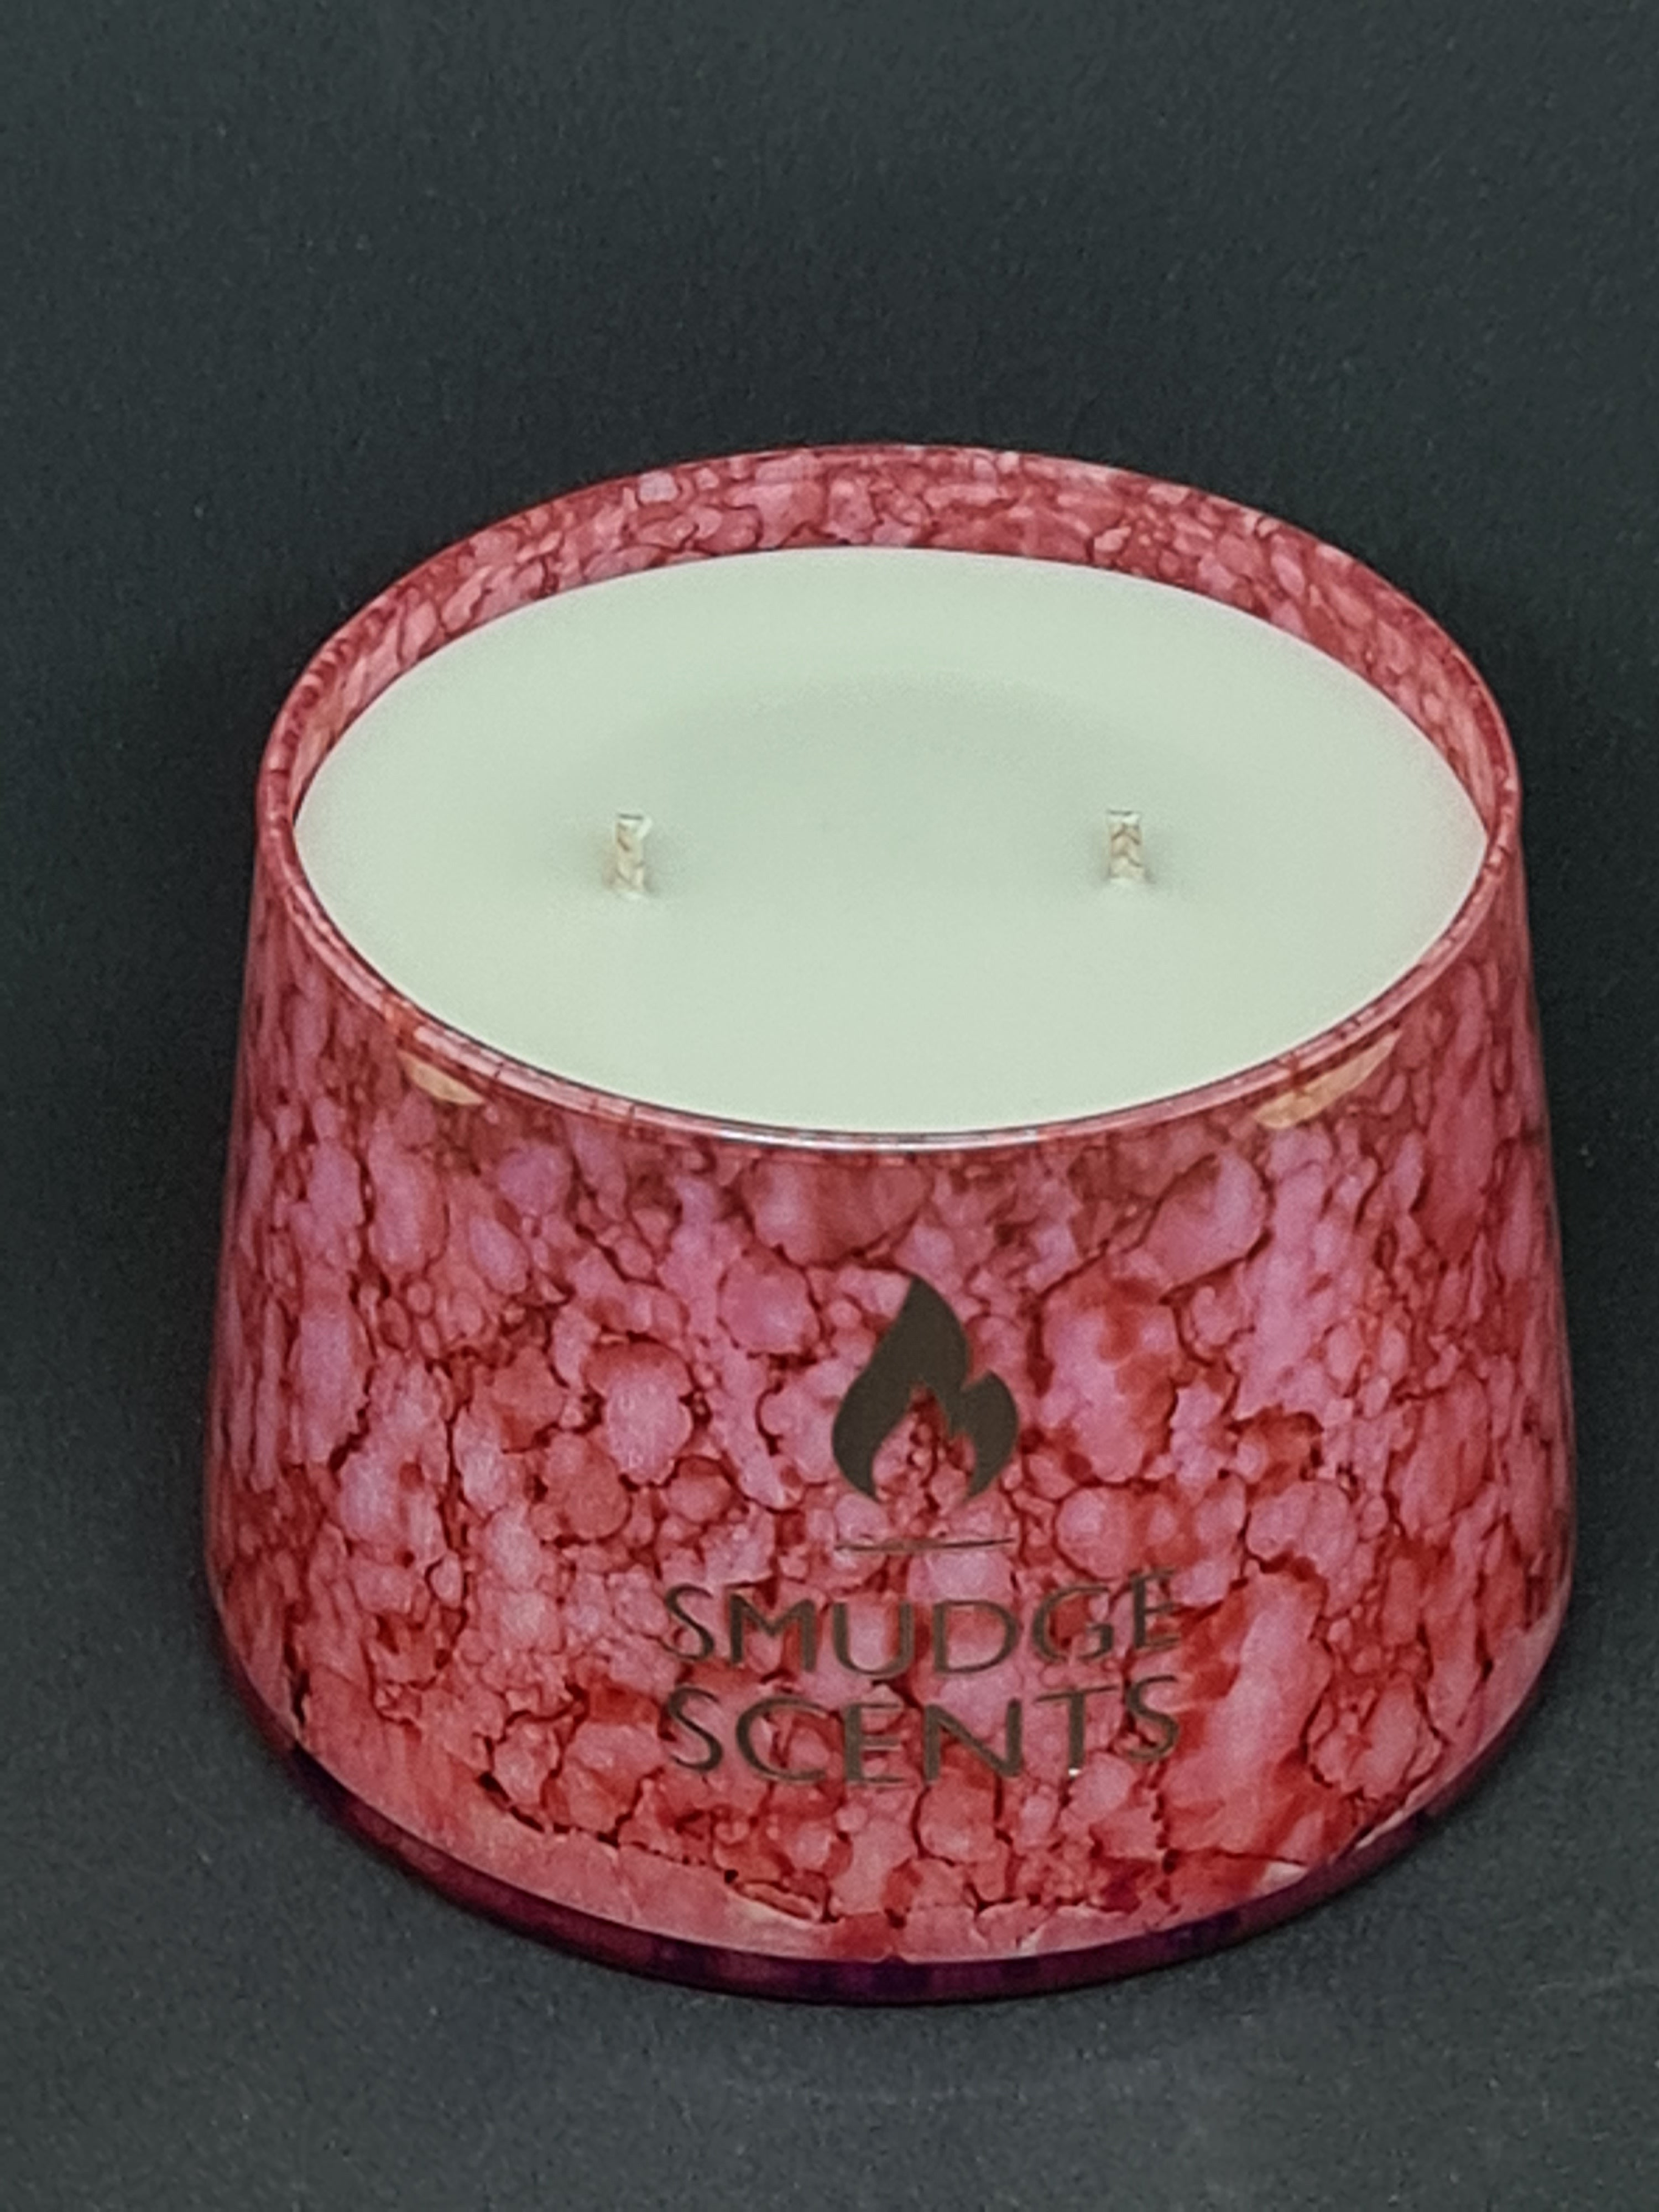 OMG Red 600gm Scented Candle